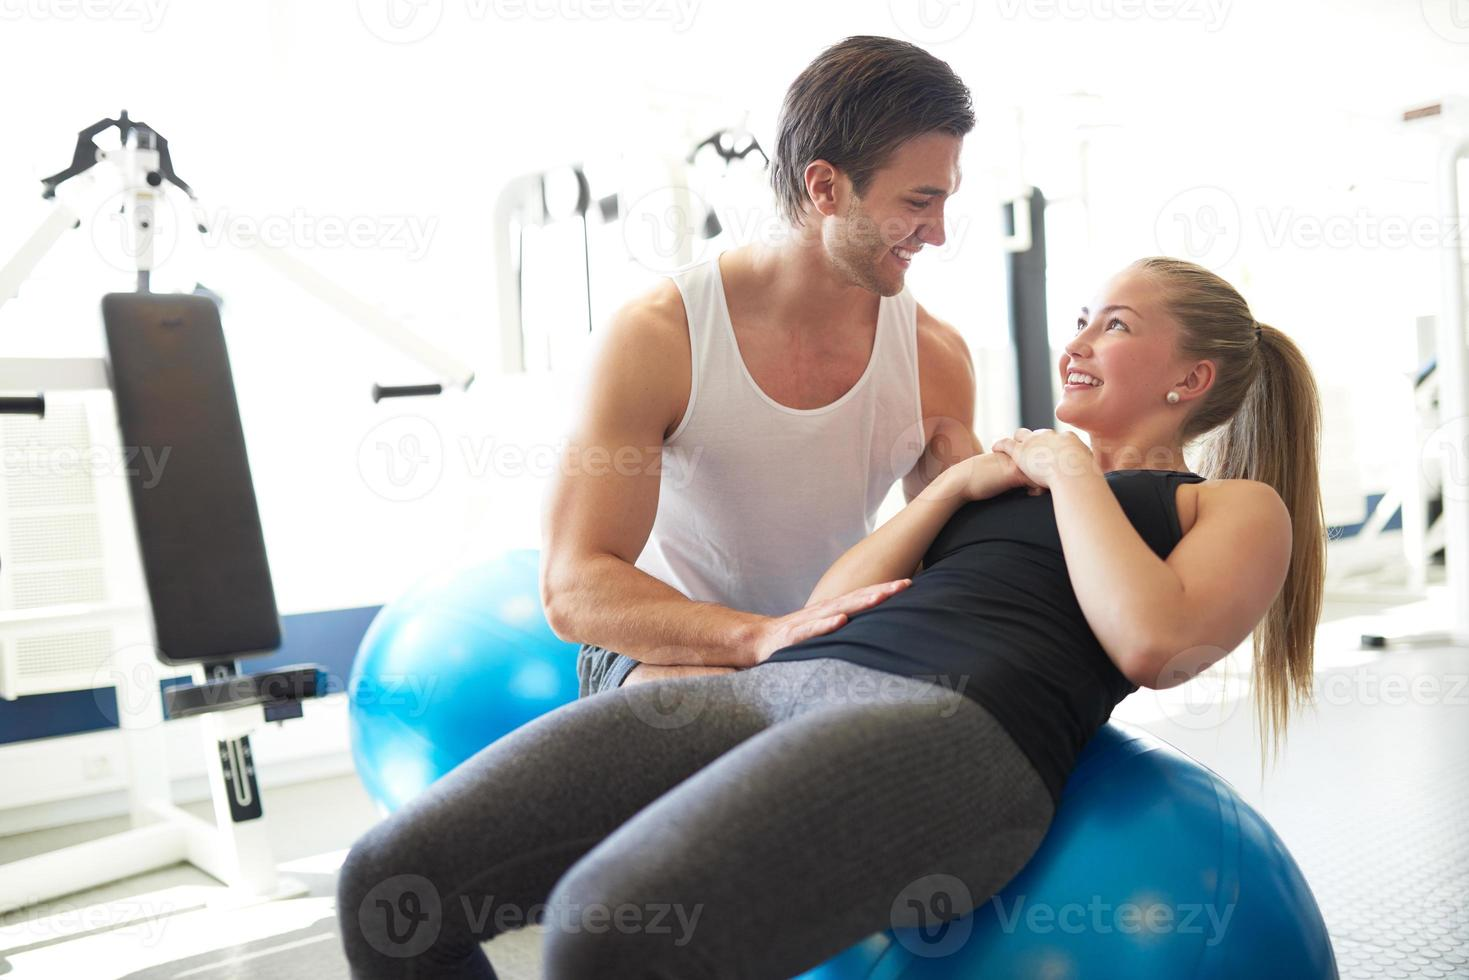 Fitness Trainer Assisting a Woman on Exercise Ball photo